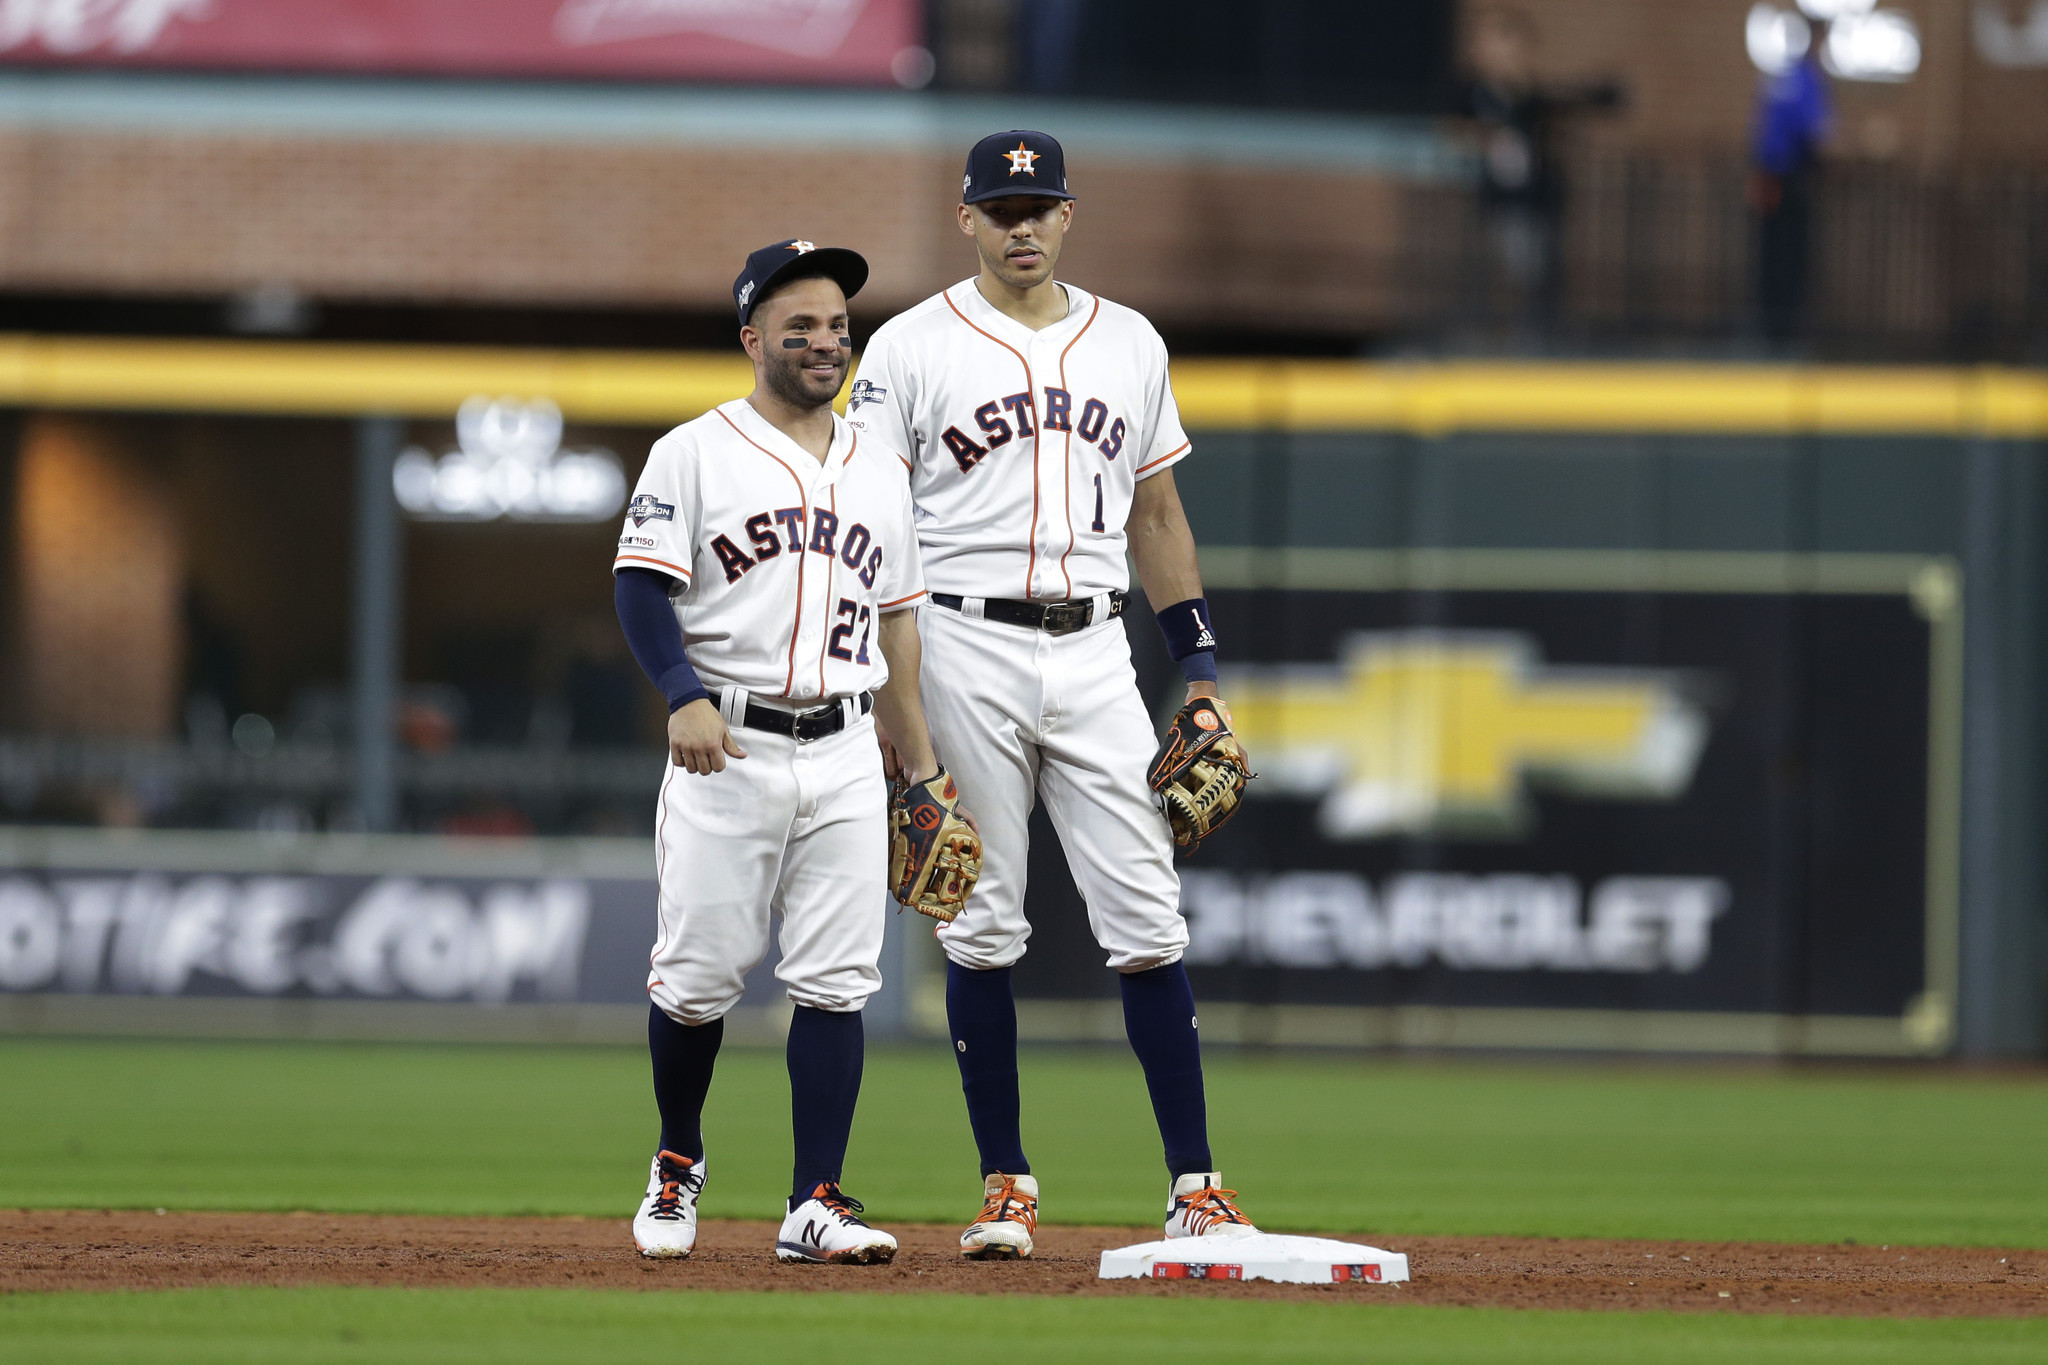 Carlos Correa rips into Cody Bellinger in defense of his Astros teammate Jose Altuve